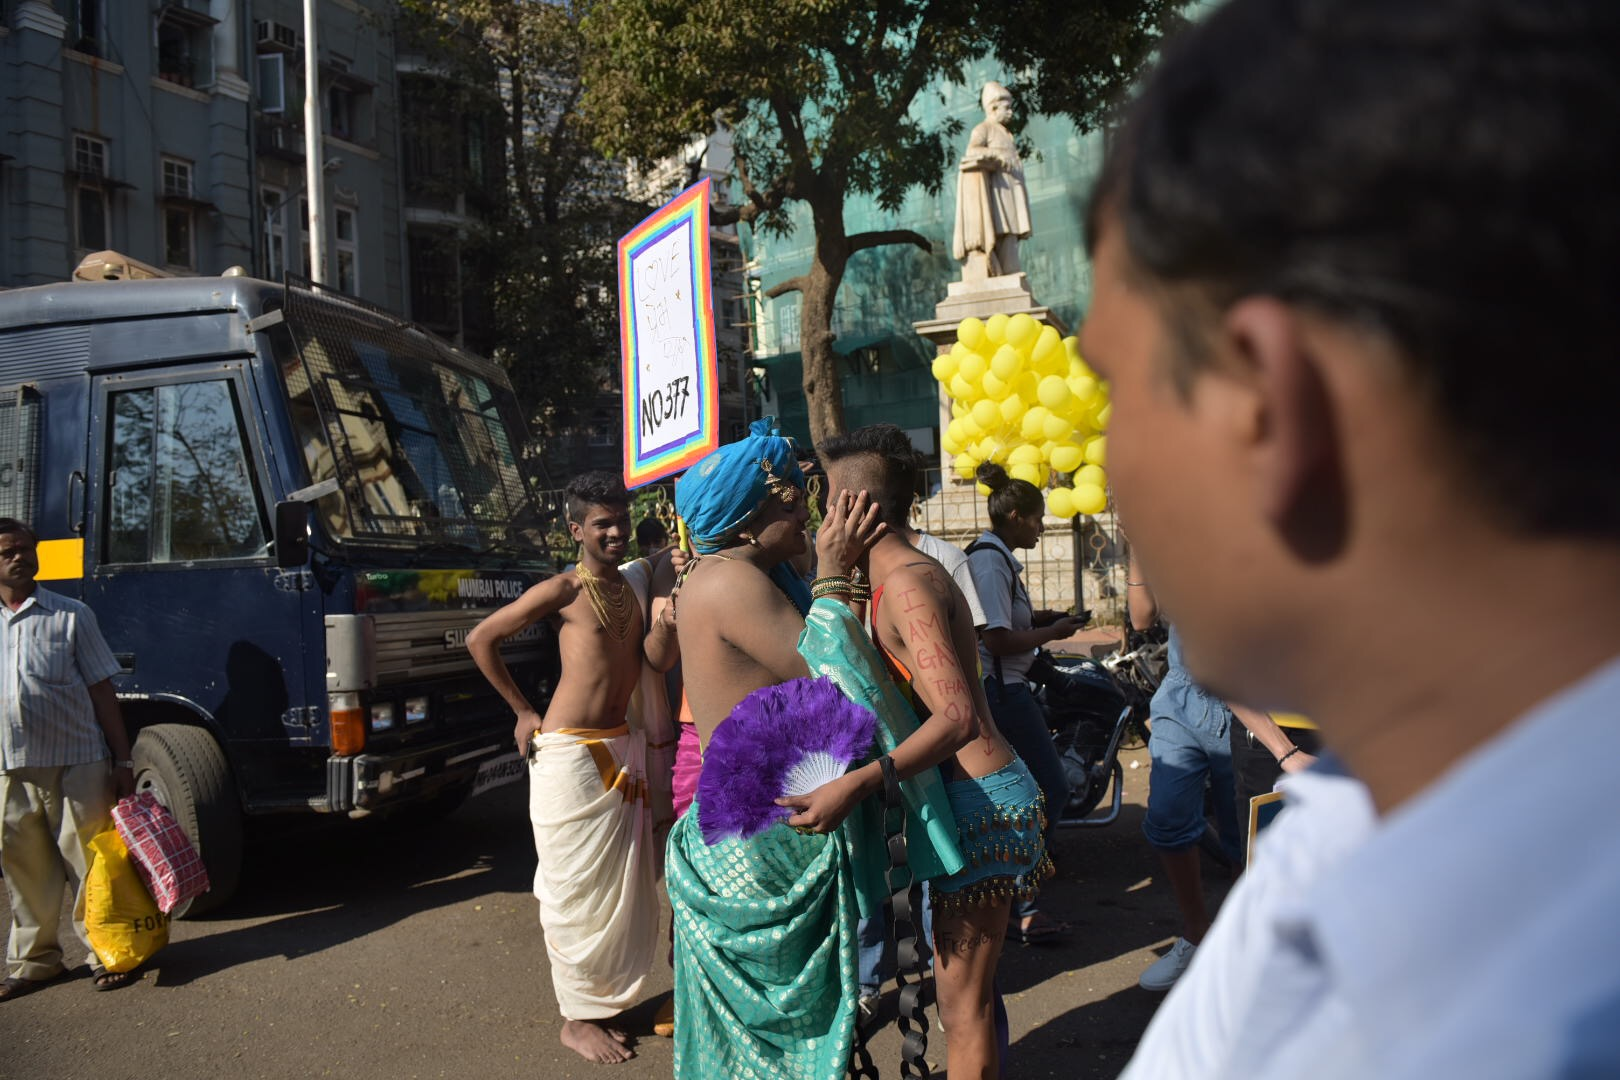 Participants at the Mumbai Gay Pride Parade greet each other enthusiastically.